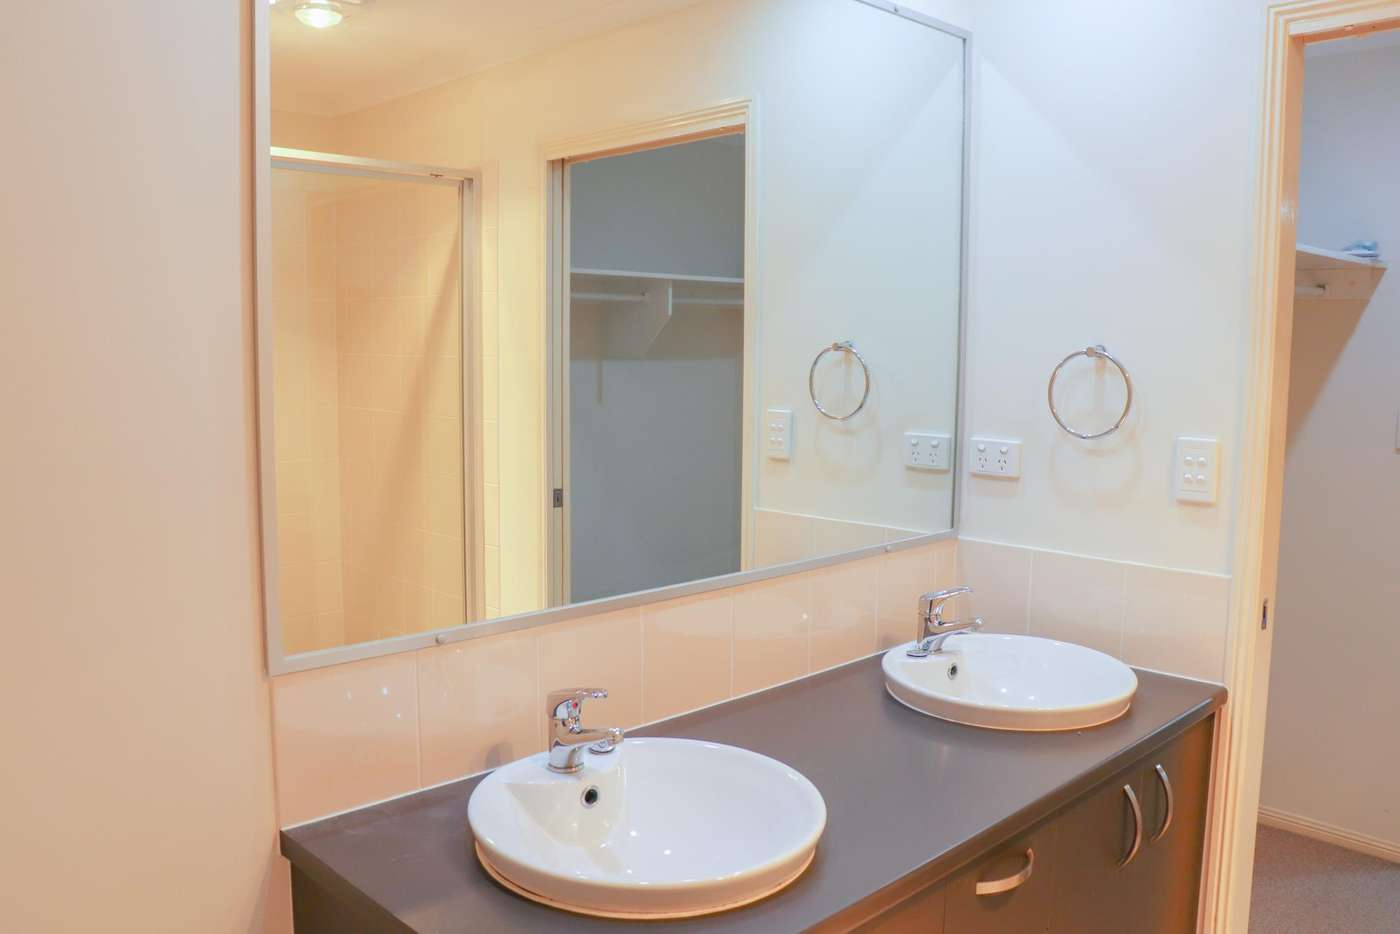 Seventh view of Homely house listing, 4/52 Golden Crest, Bellbowrie QLD 4070